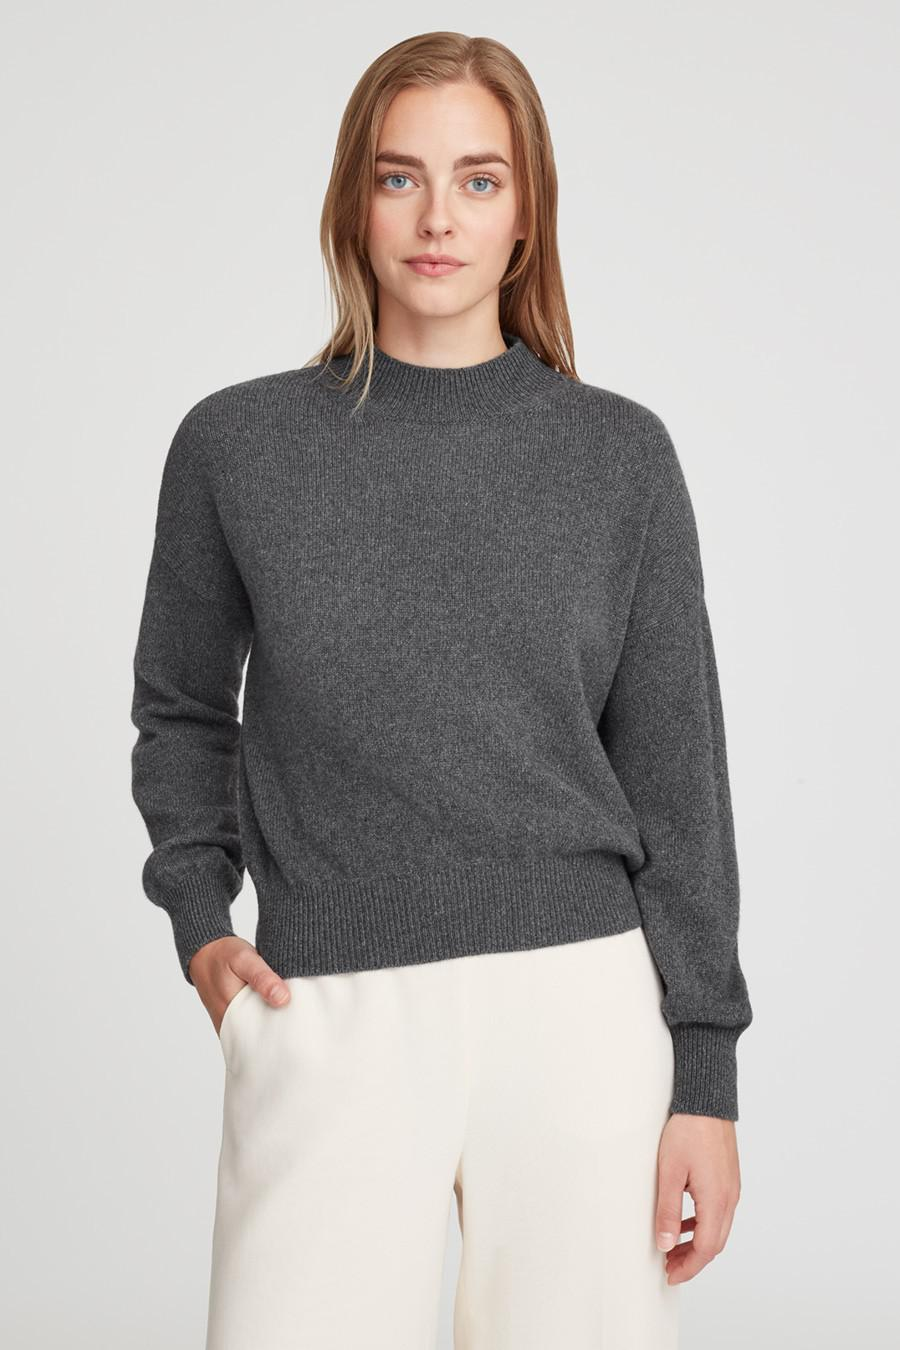 Women's Recycled Mock Neck Sweater in Charcoal | Size: 1